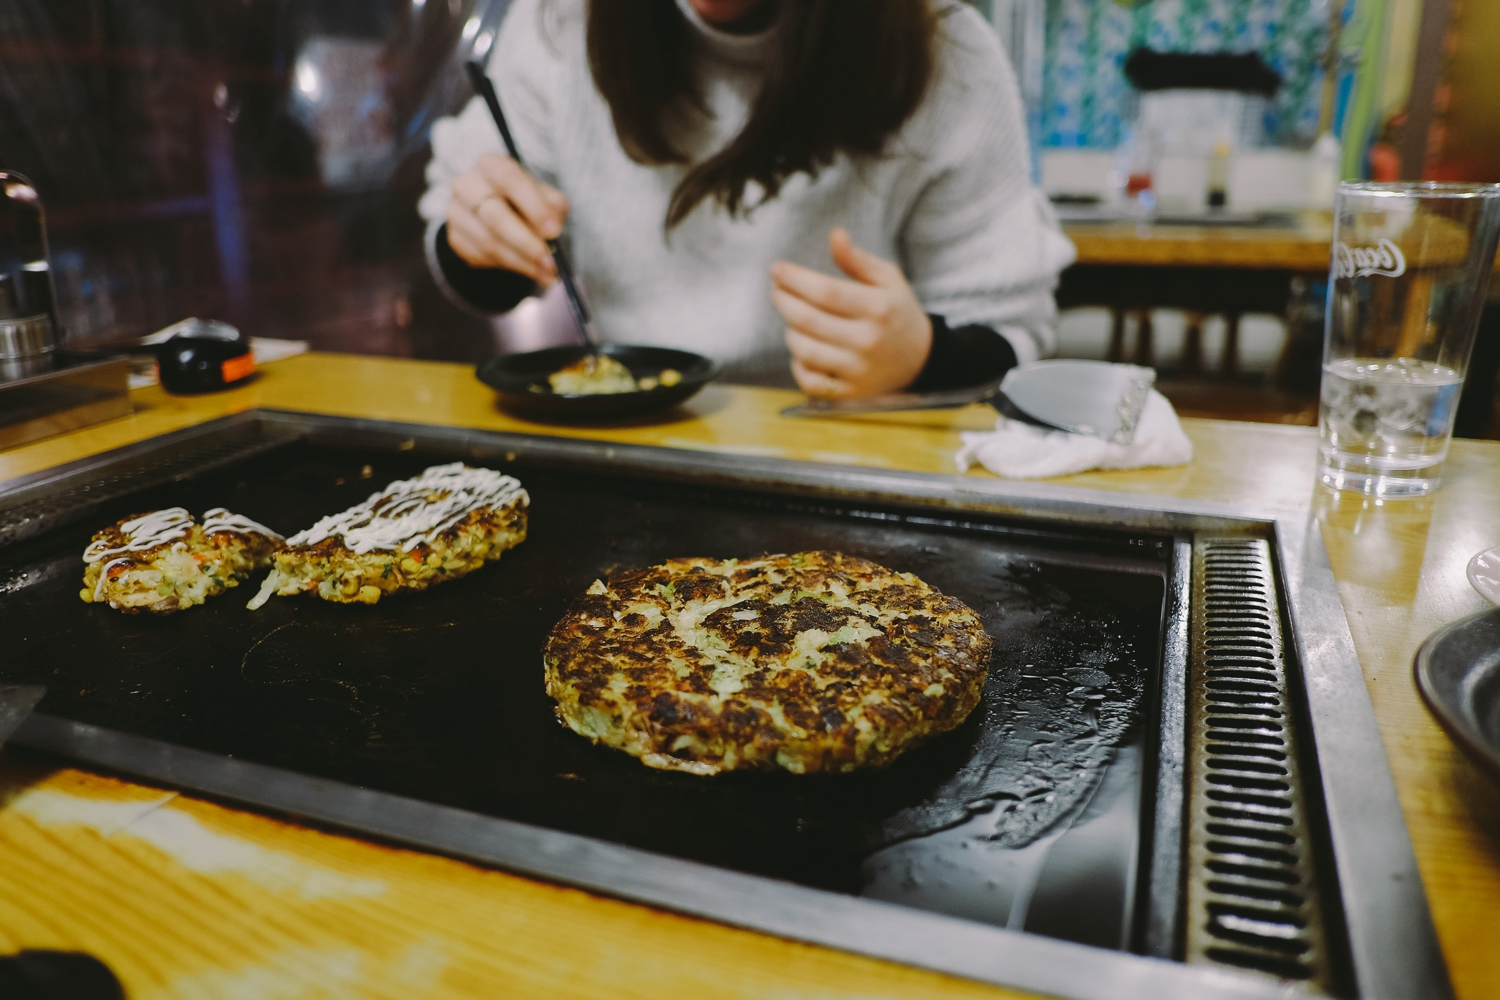 Frying our own Okonomiyaki (Japanese savoury pancake) aka my favourite Japanese food! We had it like four times and there are zero regrets here.